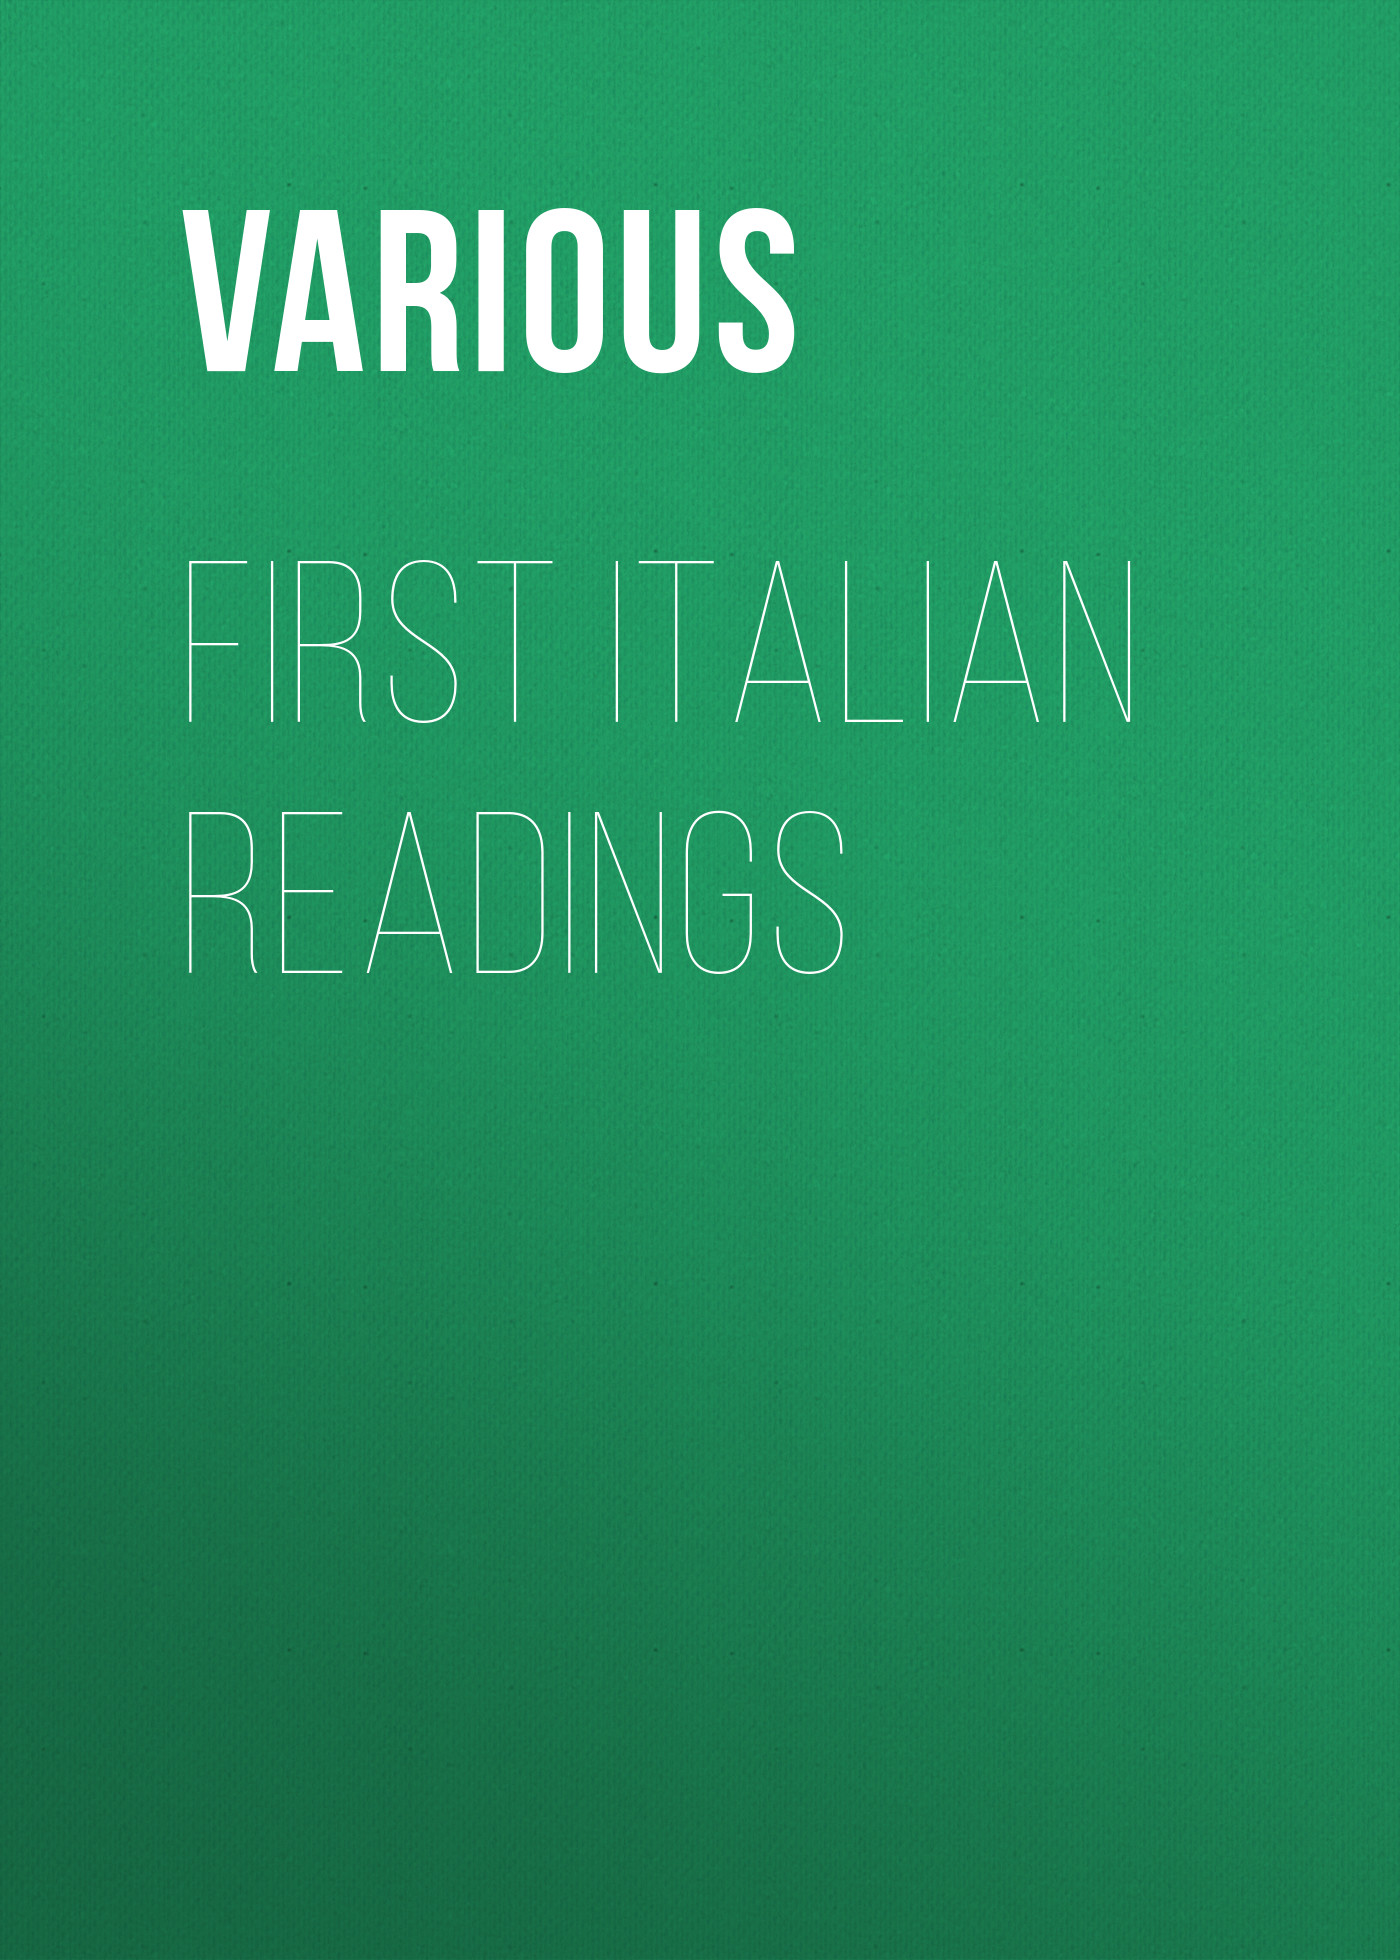 Various First Italian Readings sallie mcfague sallie mcfague collected readings